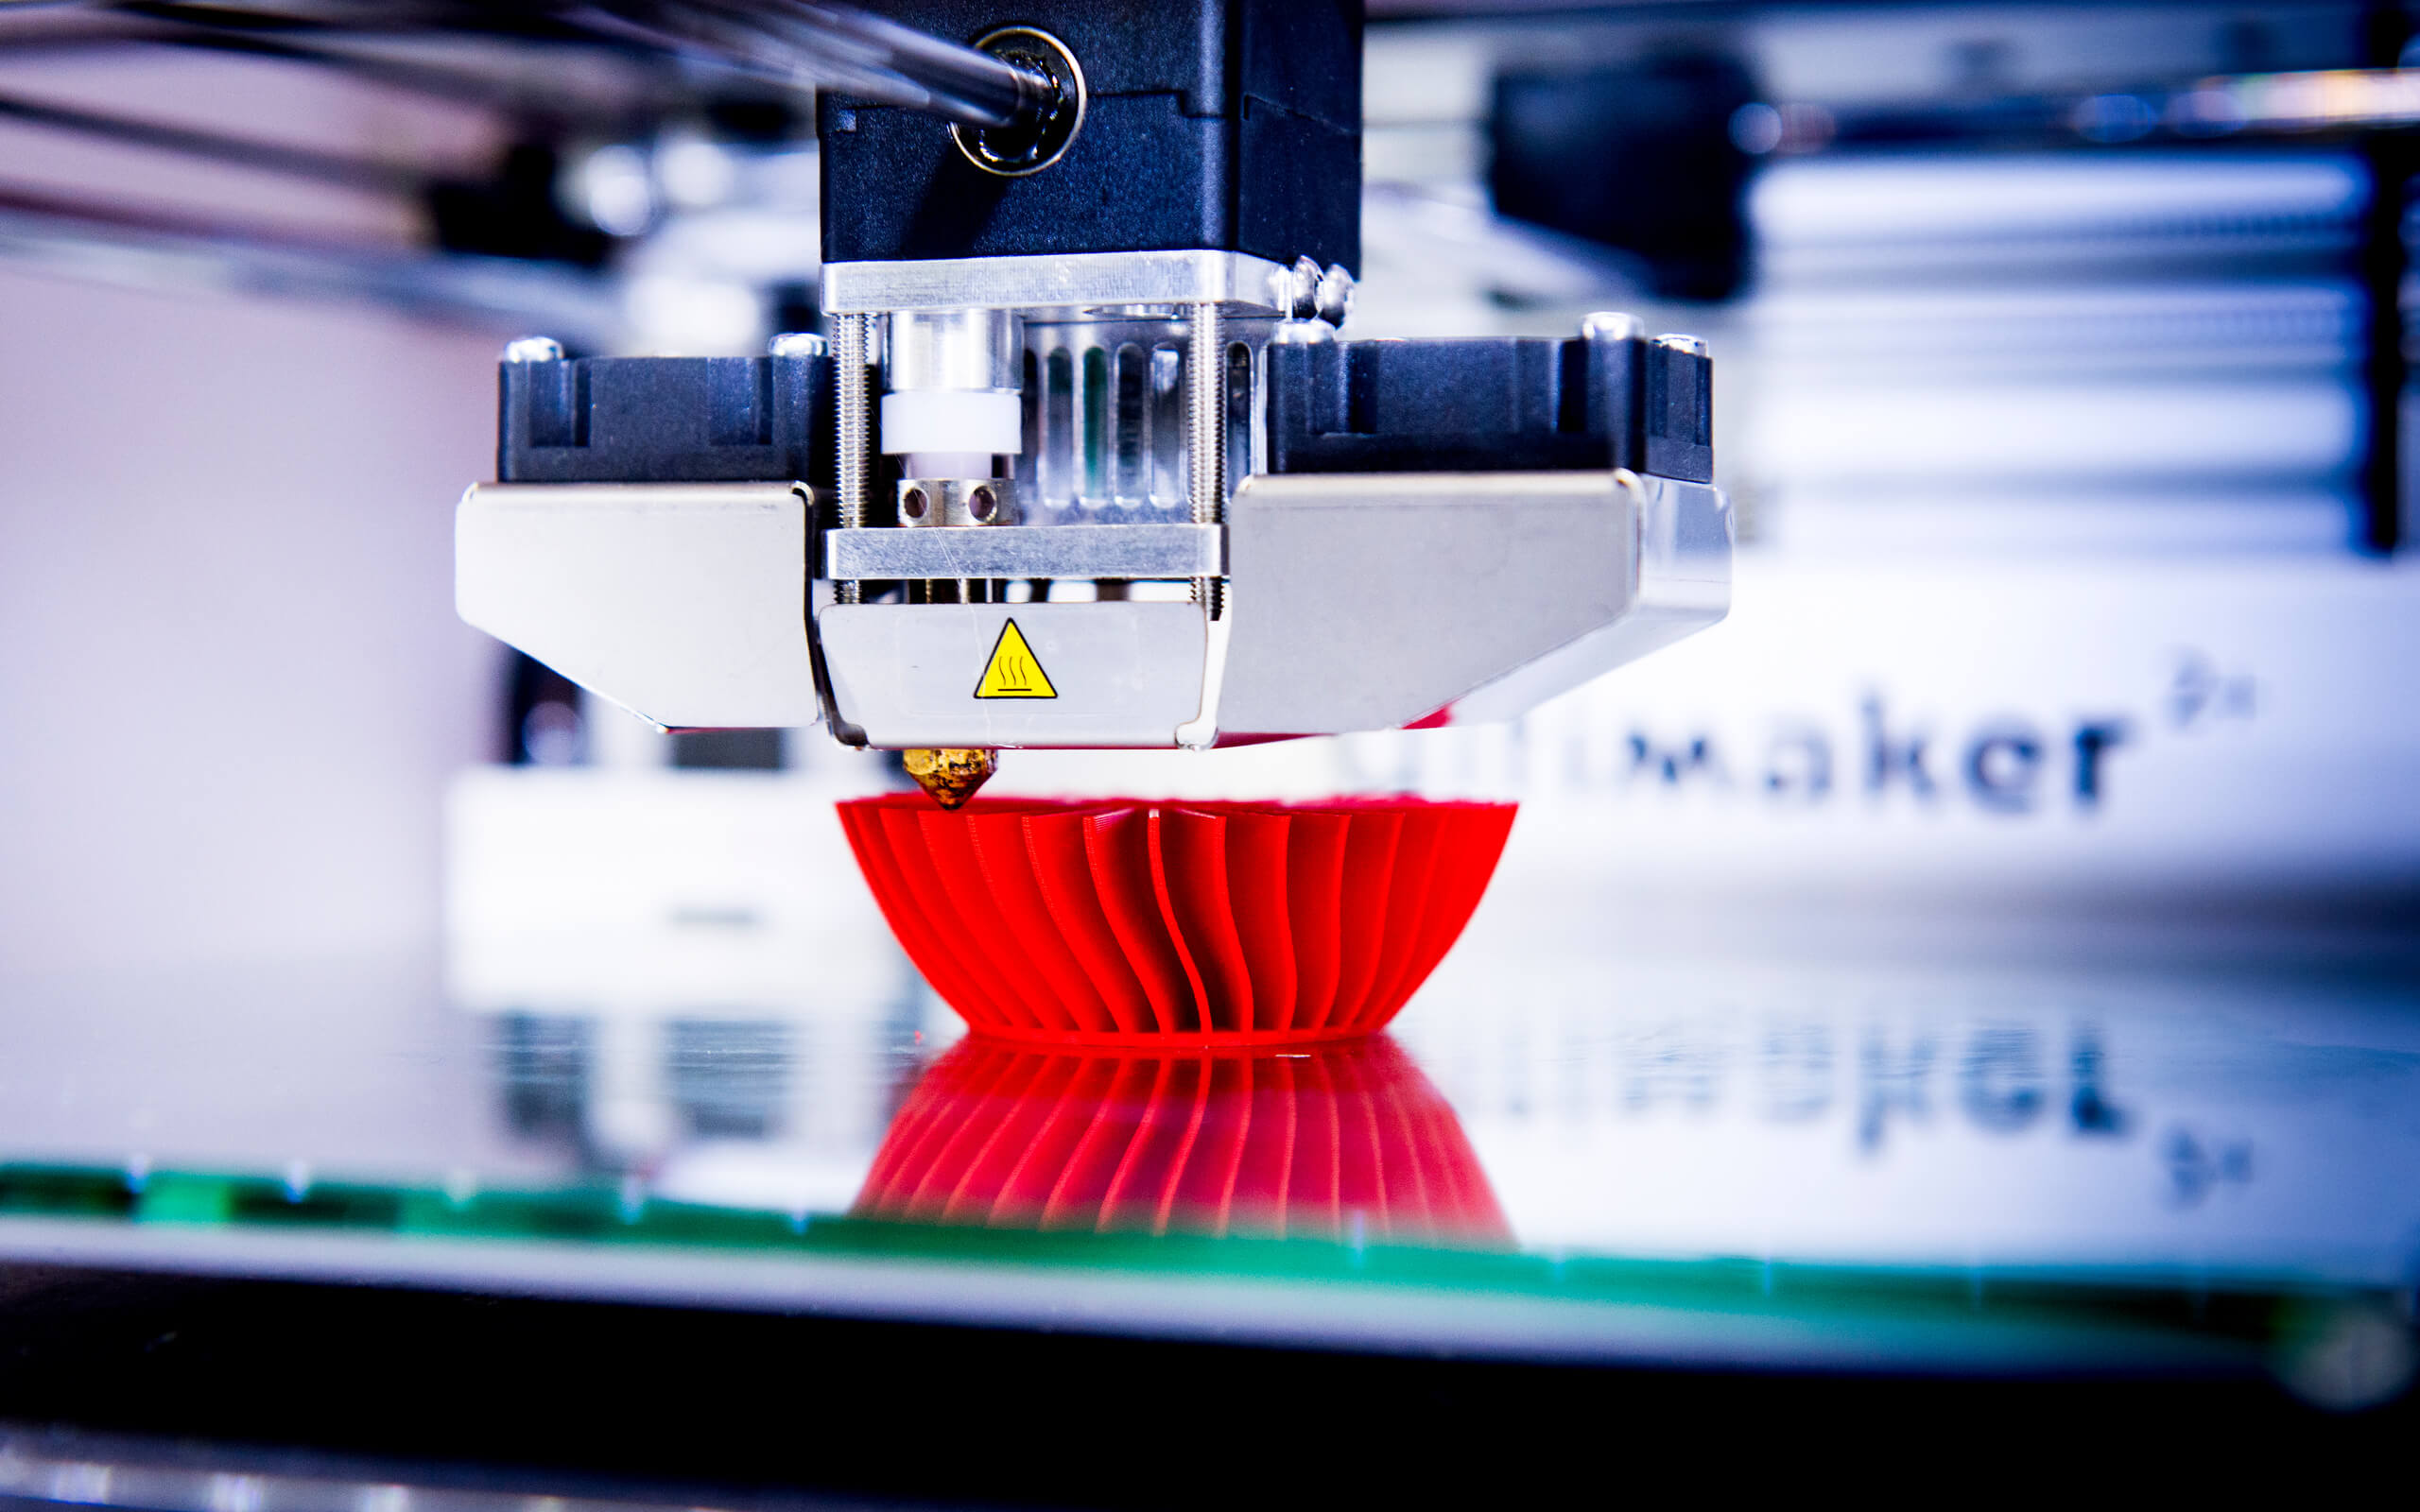 3D printing machine creating a red case